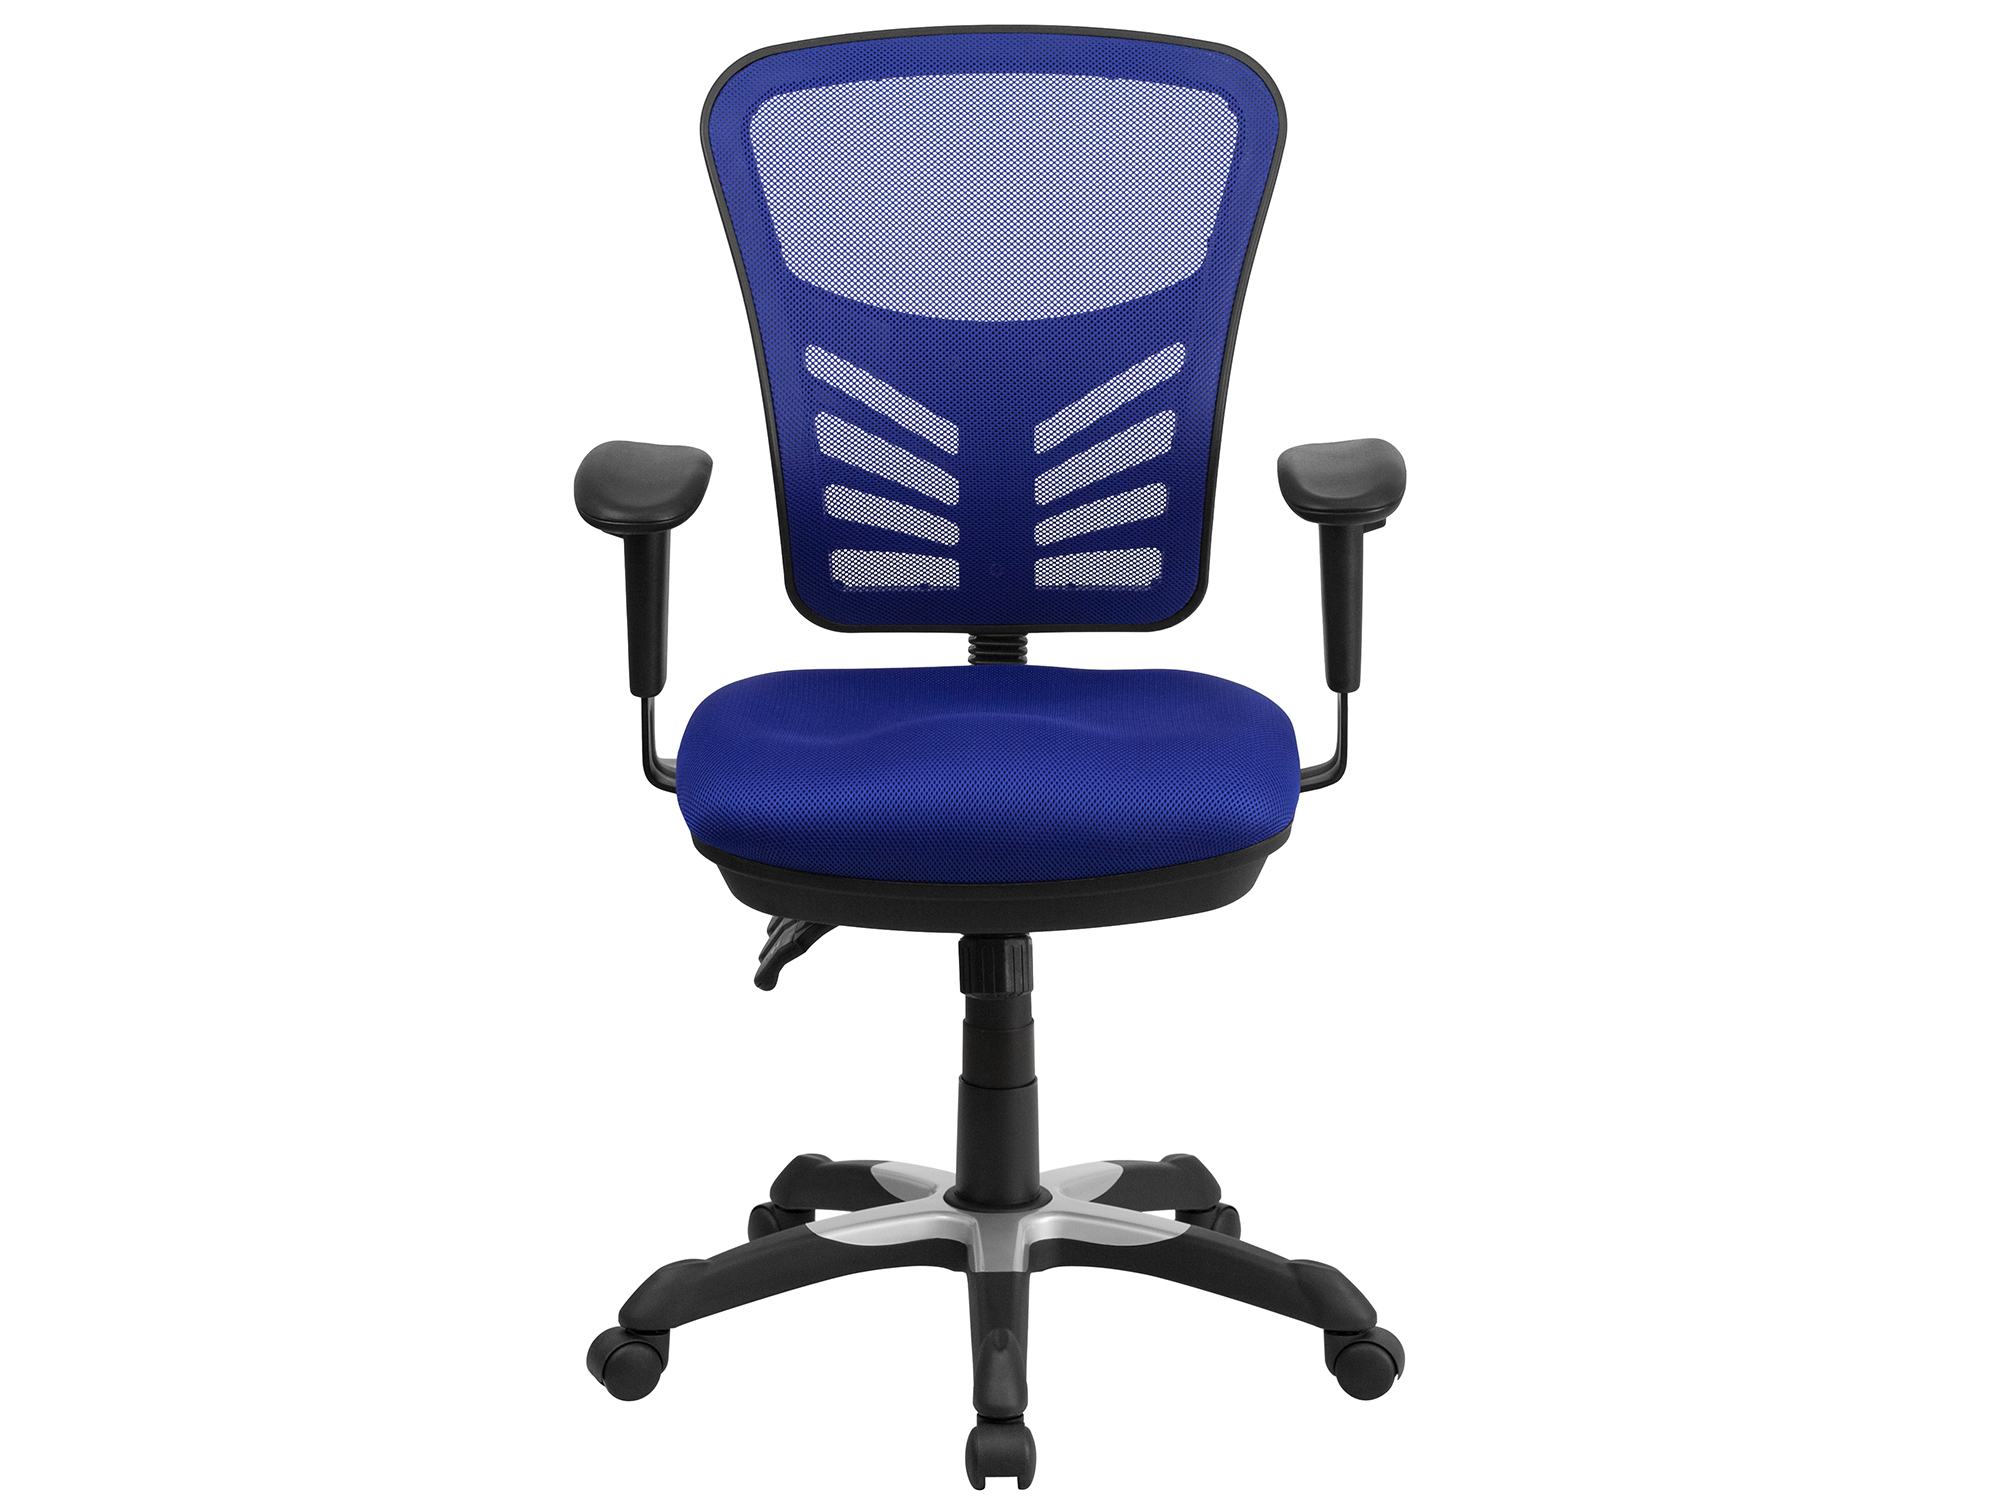 Colorful fice Chairs fice Task Chairs Chairs For fice